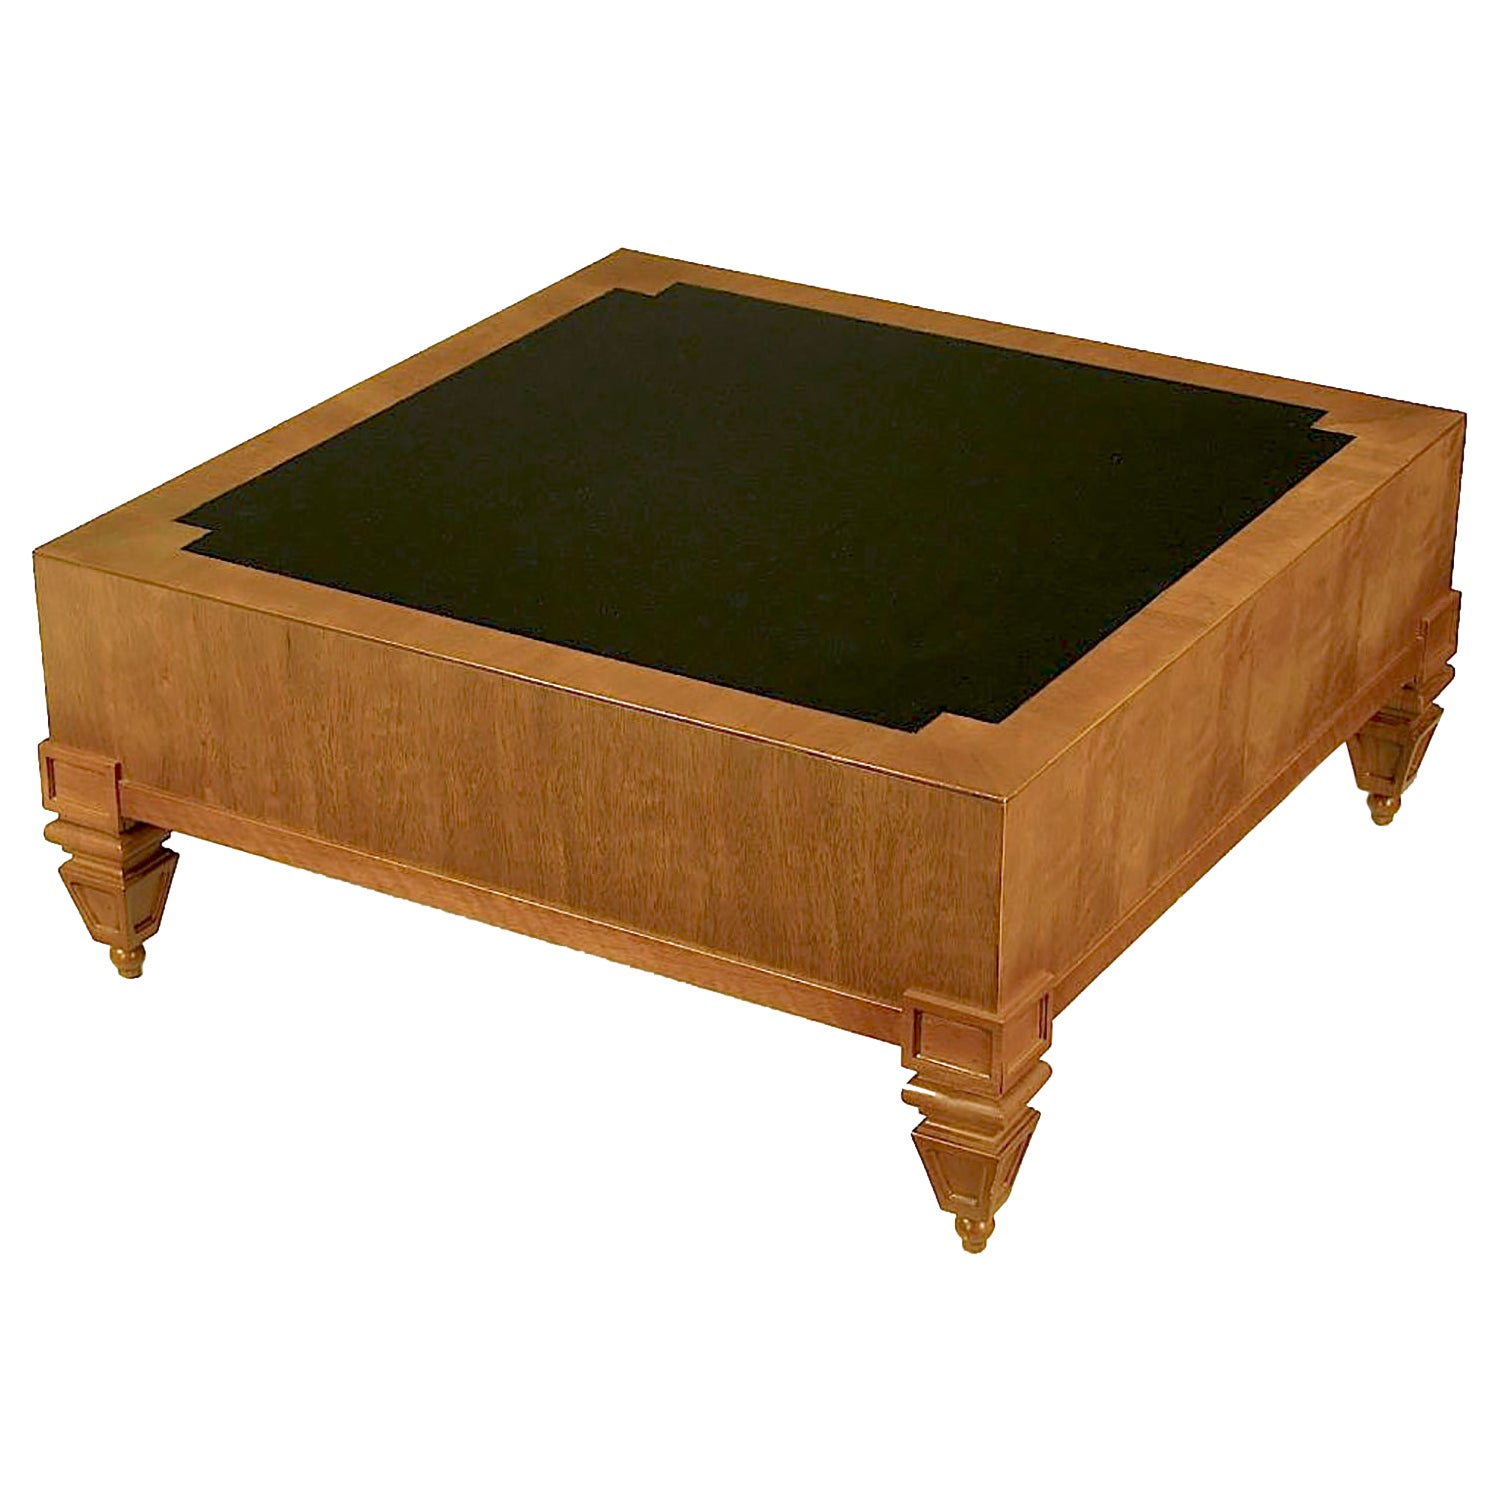 Tomlinson Empire Style Mahogany and Black Leather Square Coffee Table